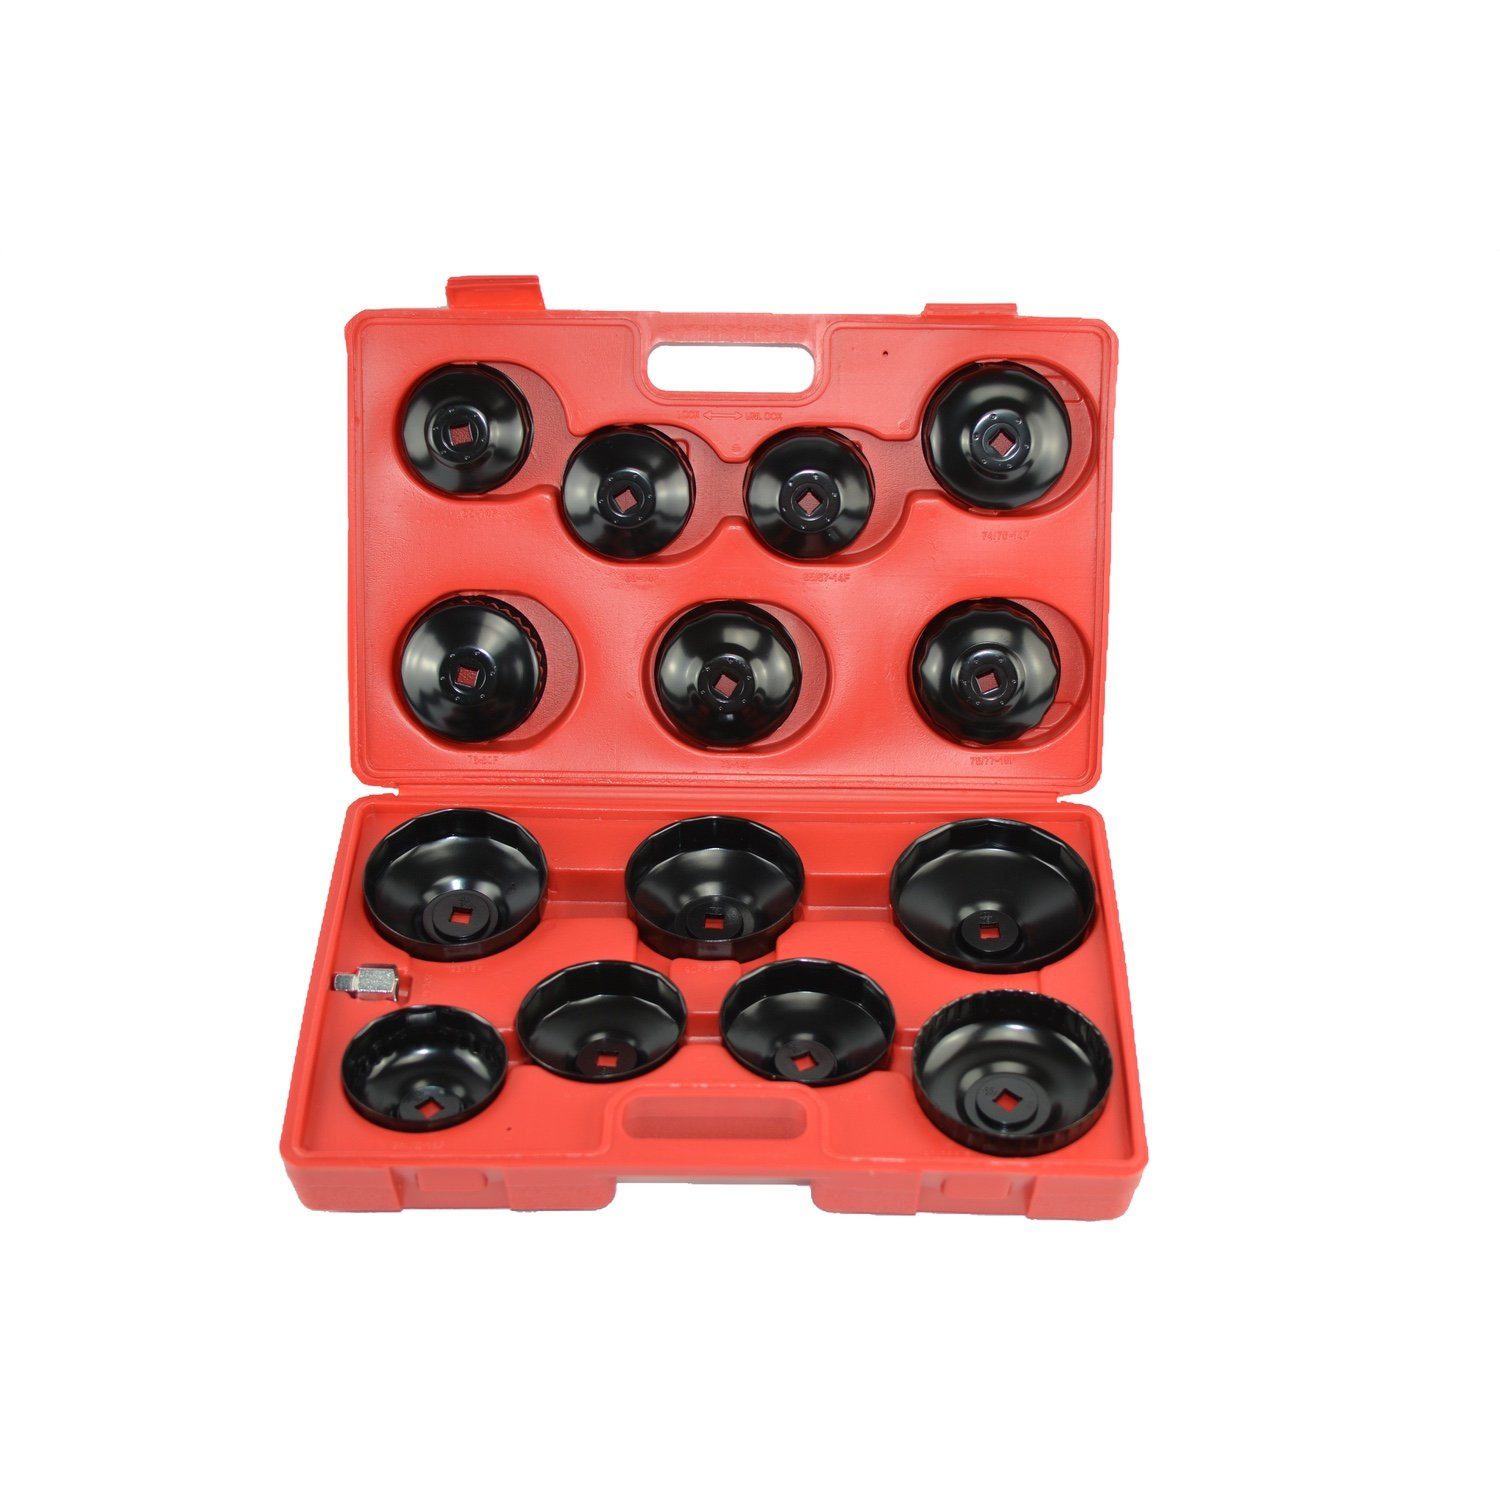 14 PC Set Of Keys Cups For Oil Filters